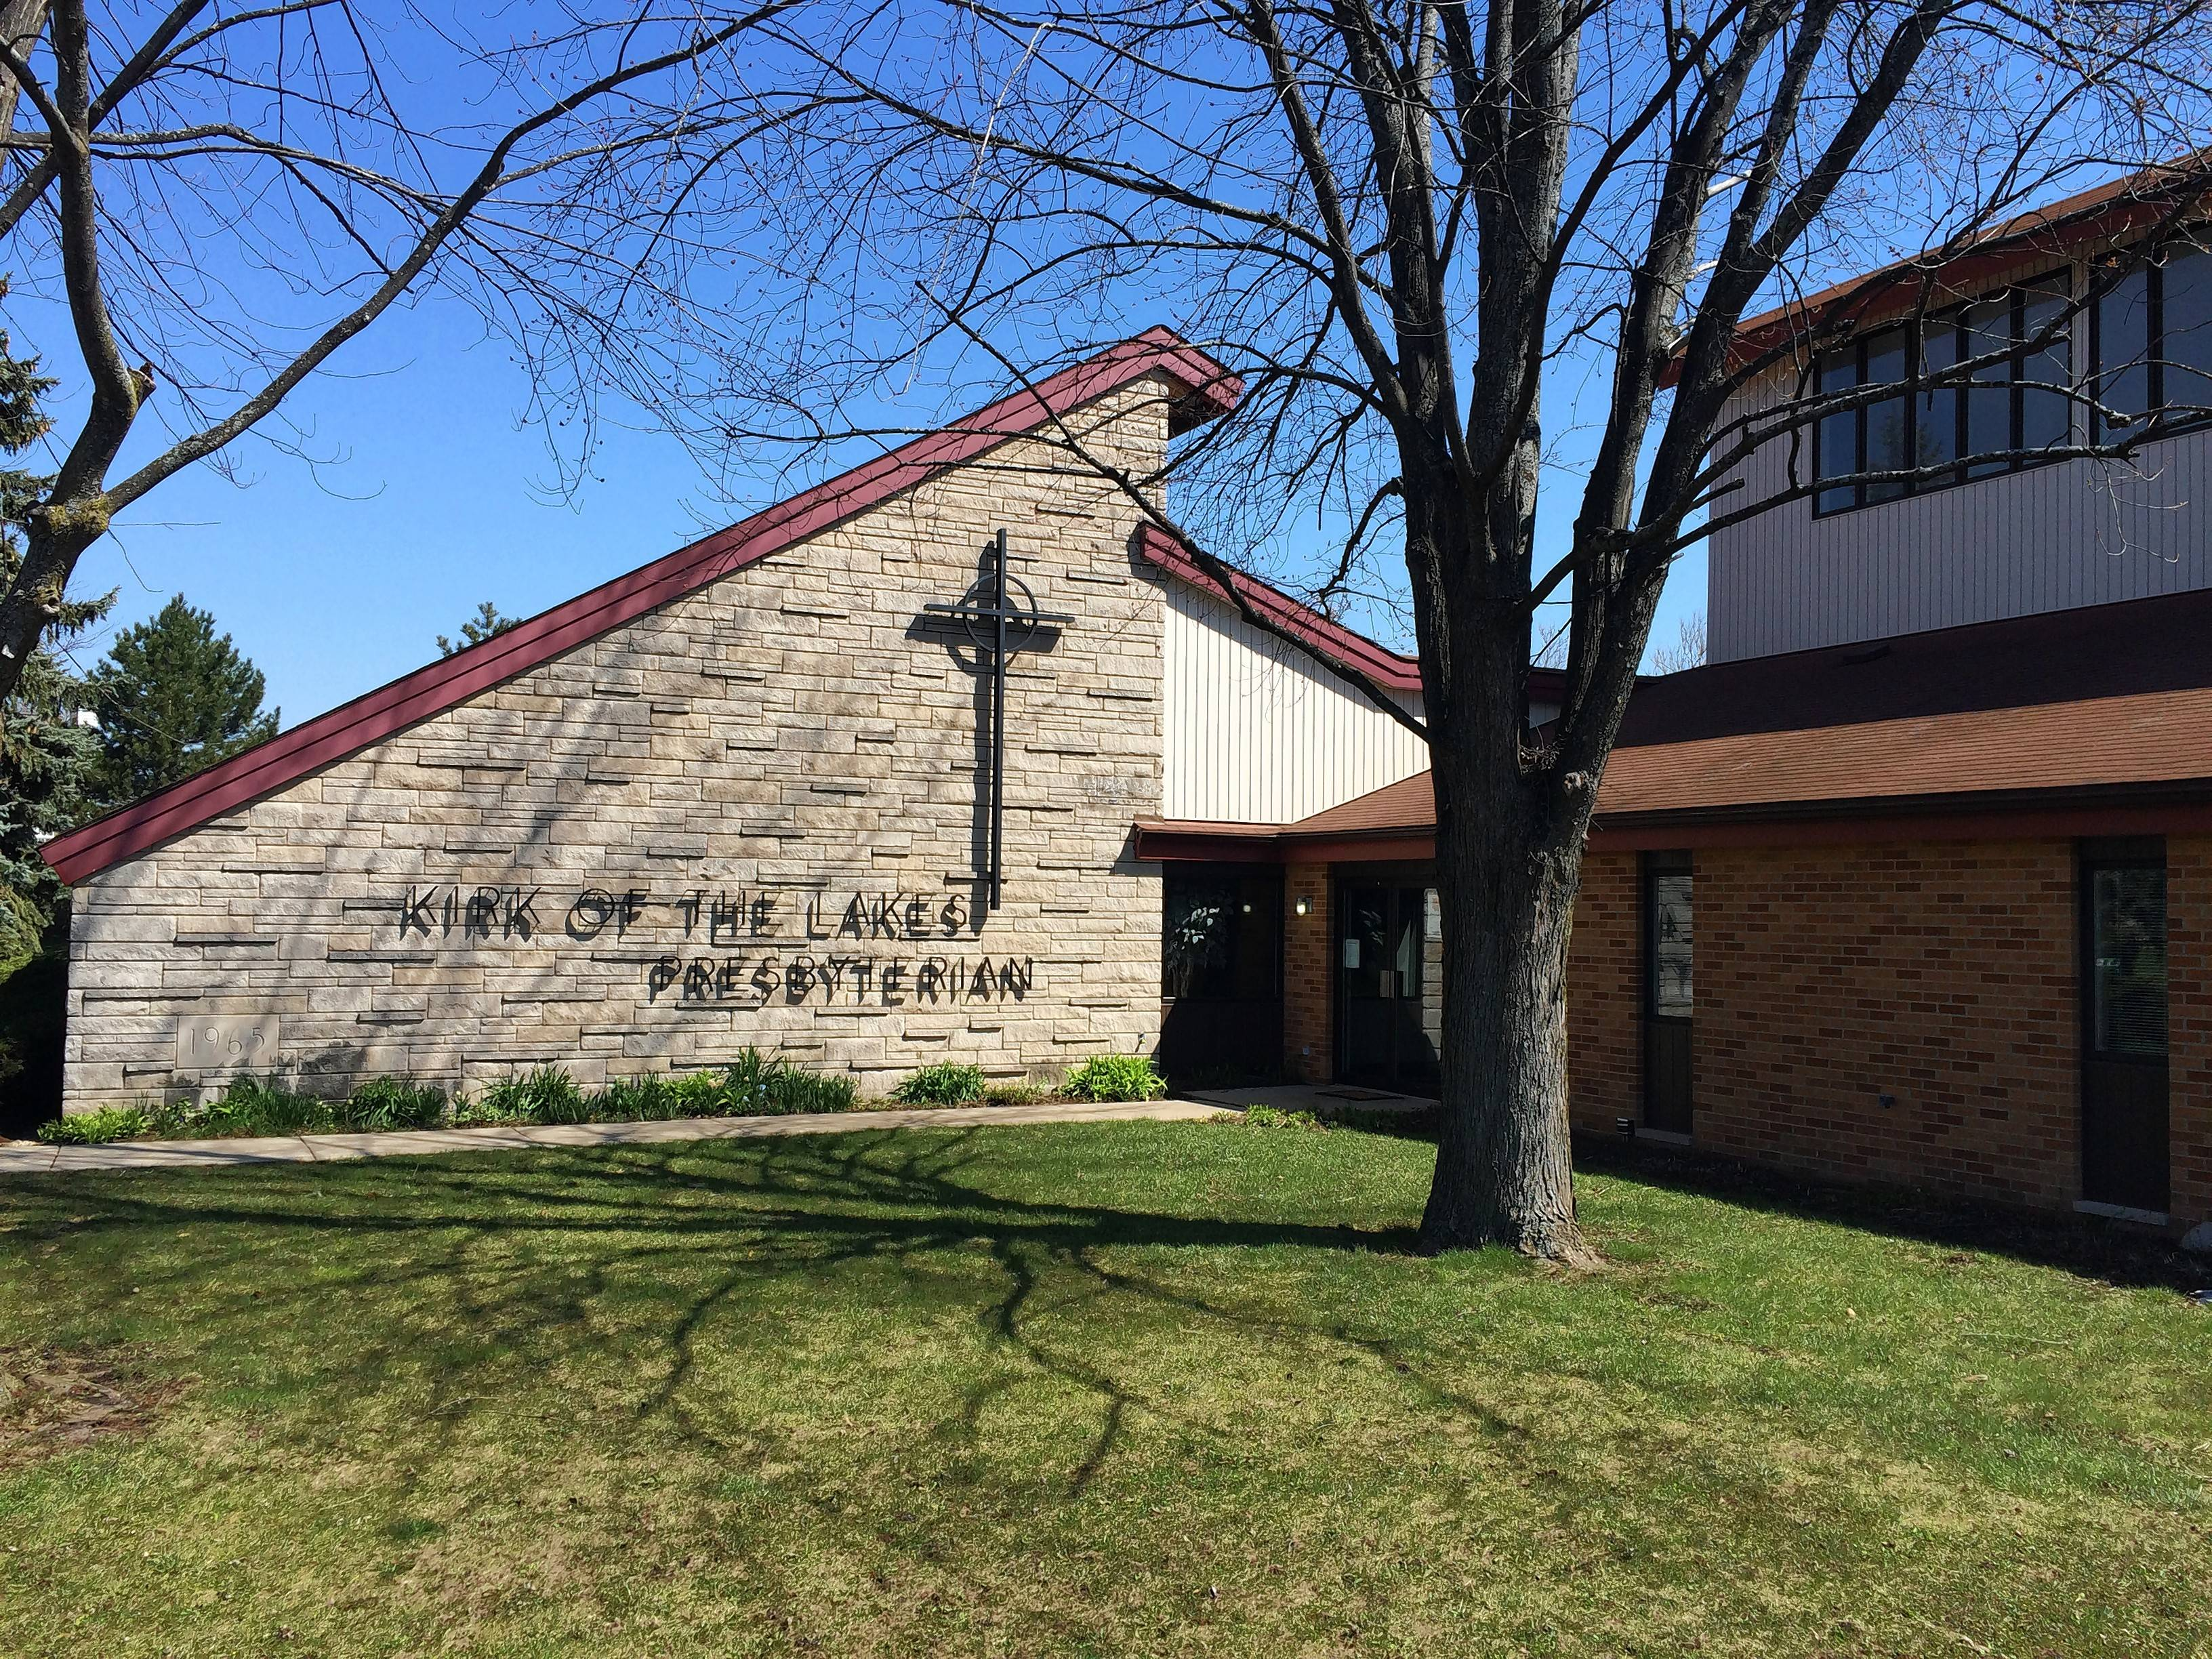 Kirk of the Lakes Presbyterian Church in Mundelein is being purchased by neighboring Mundelein High School and will close. School officials plan to use the church's gym for athletic practices and may use some of the site for parking.